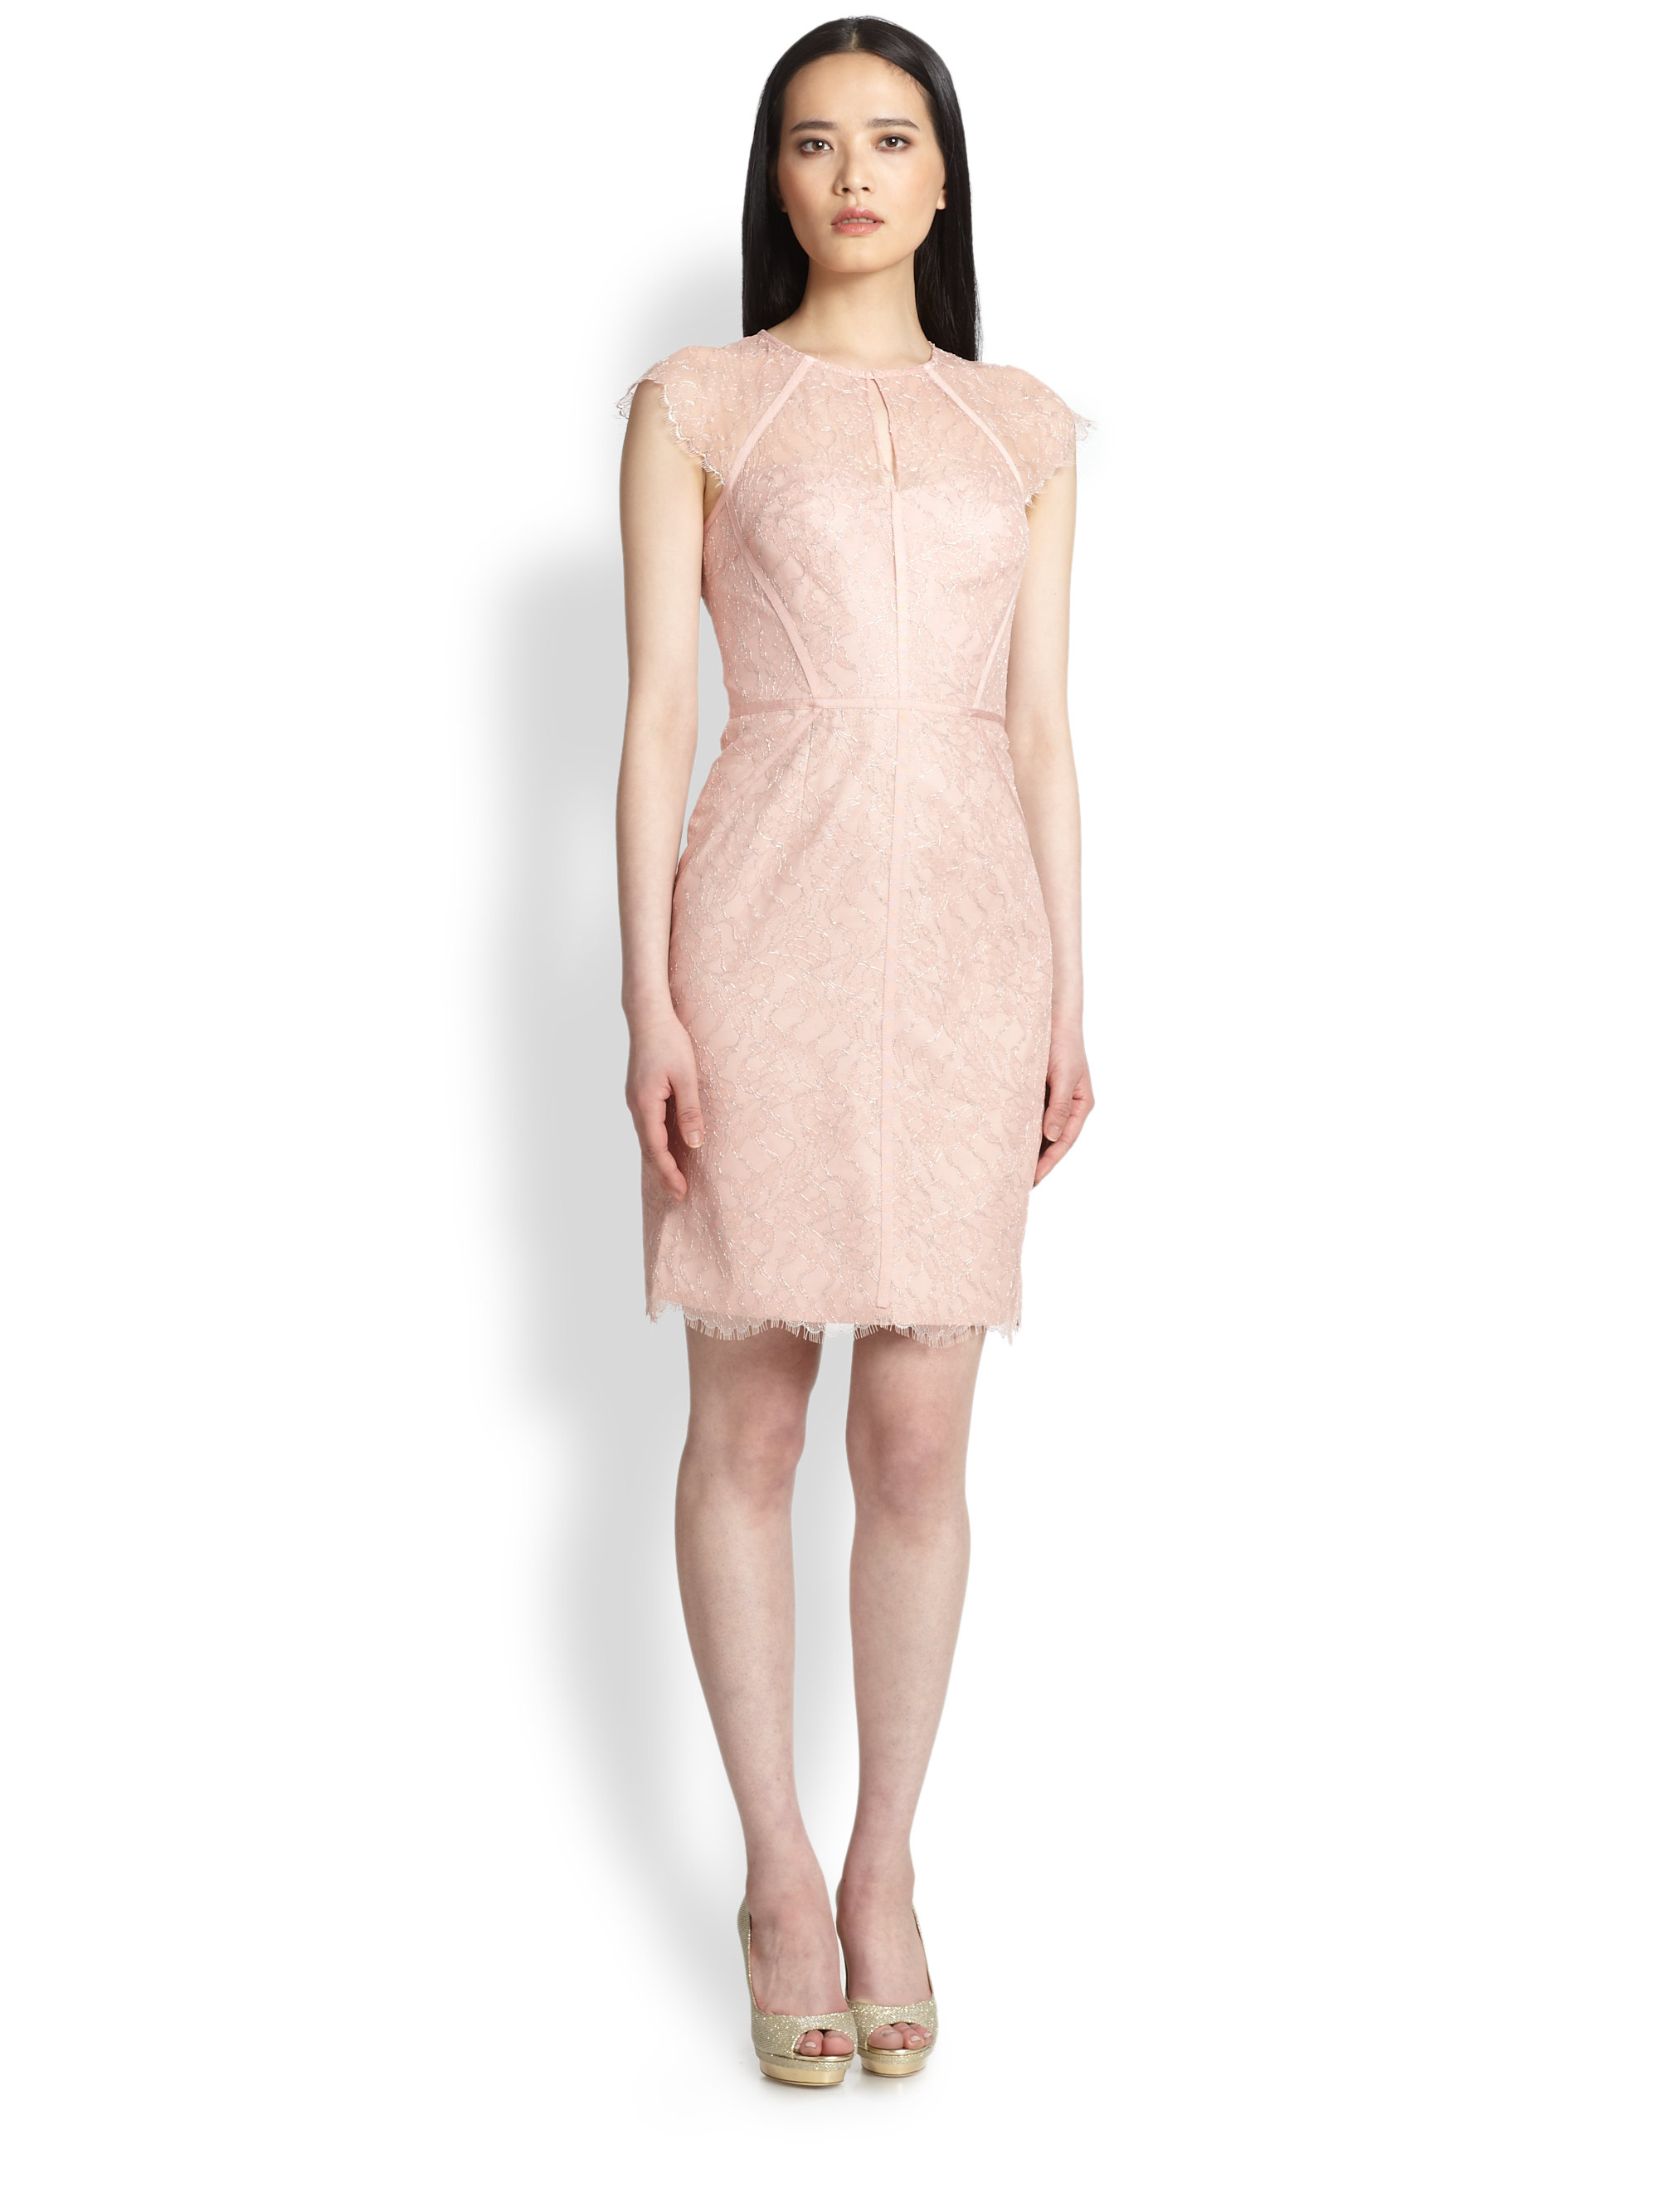 Lyst - Ml monique lhuillier Lace Cap-Sleeve Dress in Pink